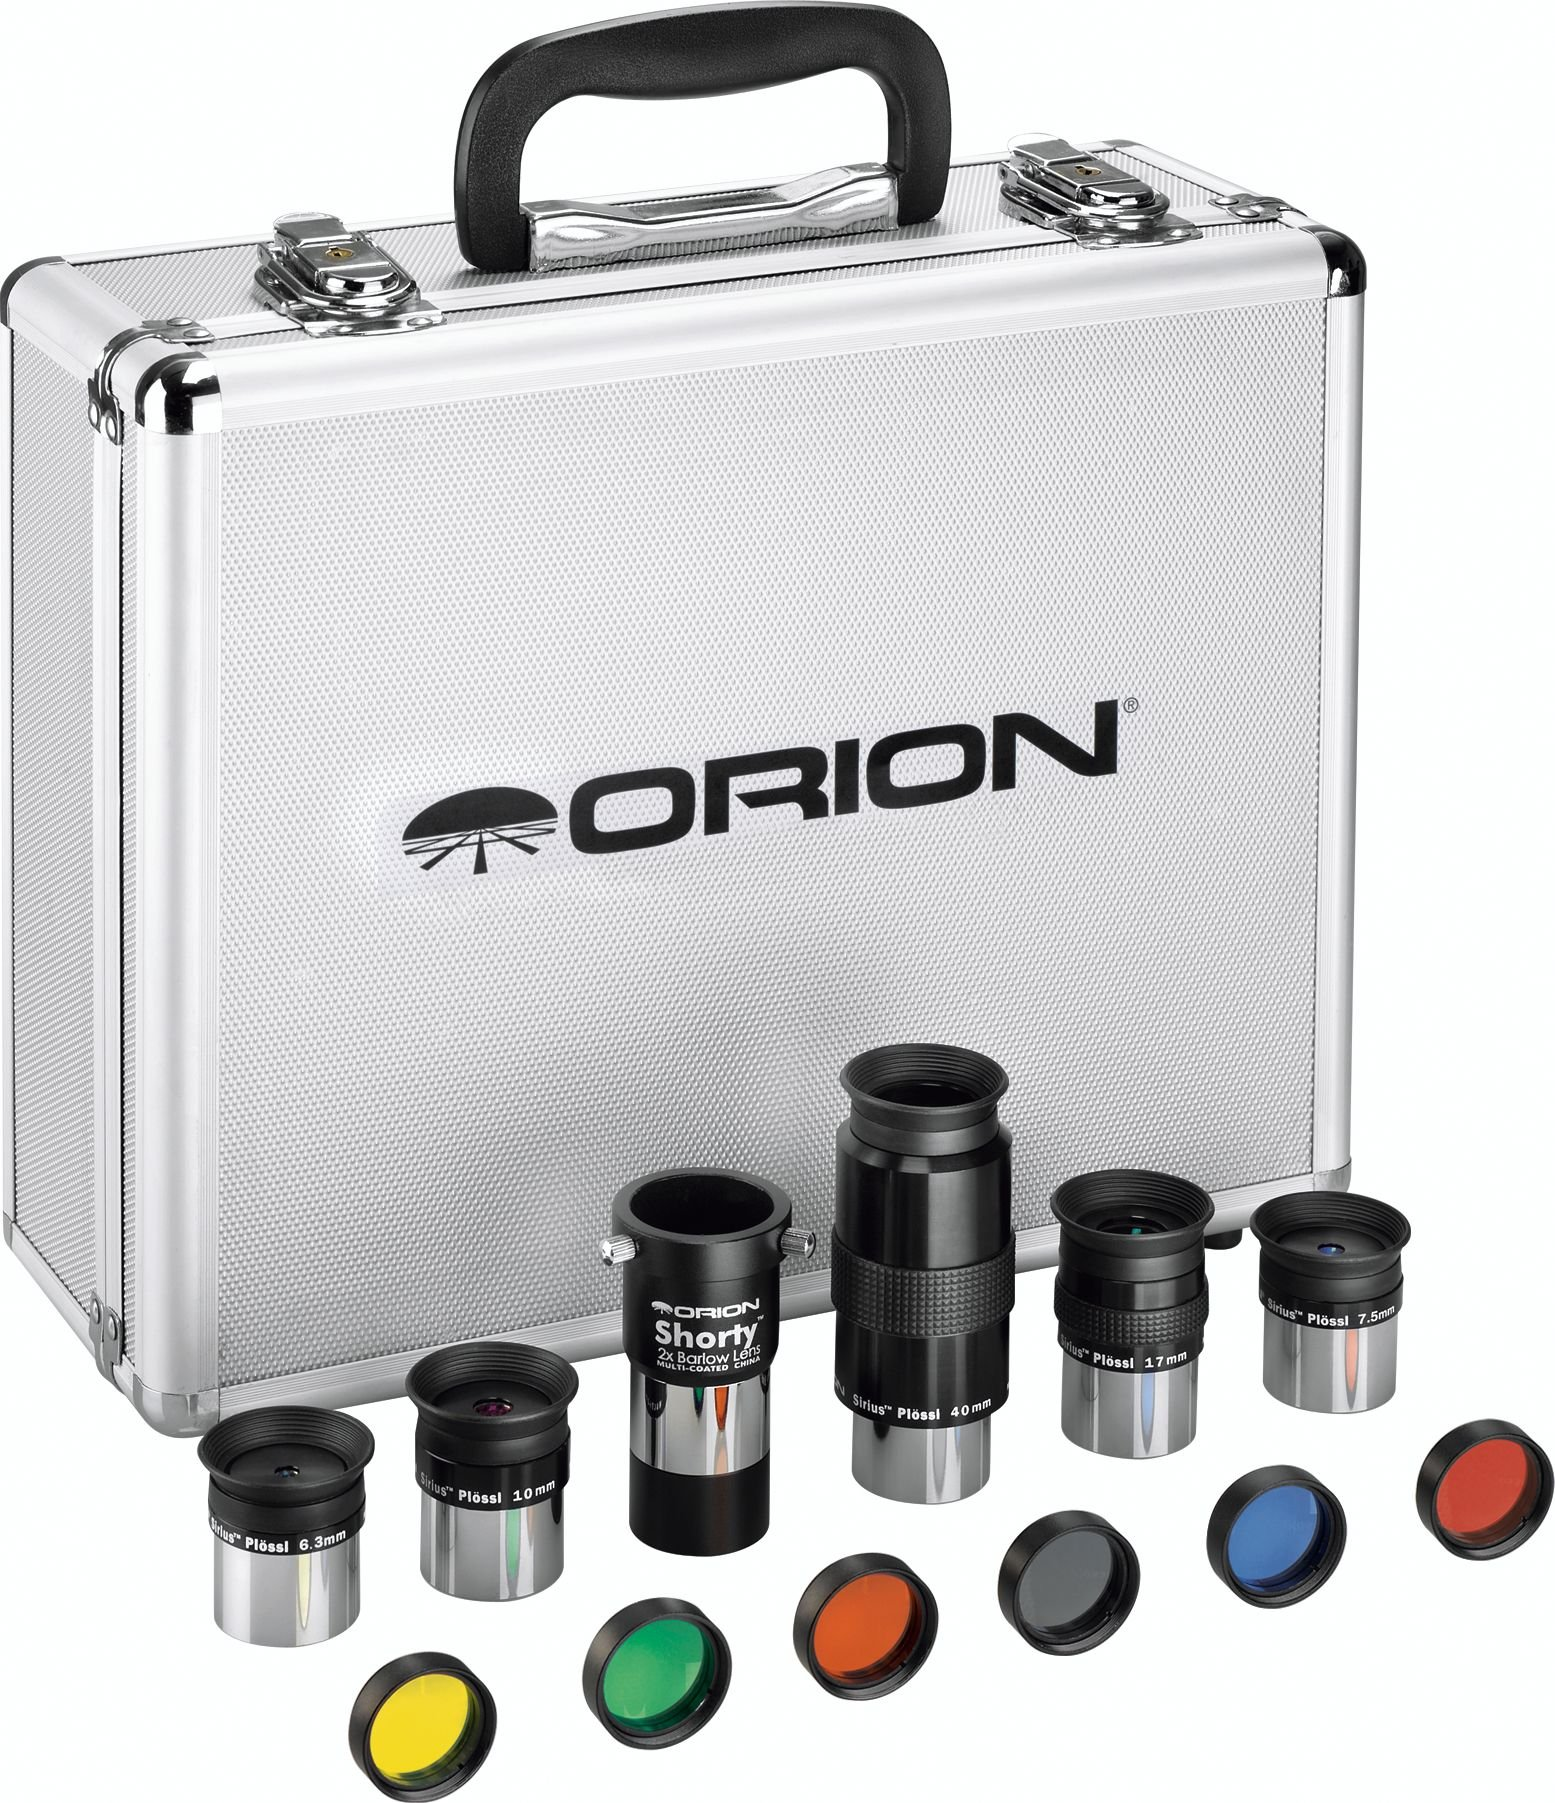 Orion 08890 1.25-Inch Premium Telescope Accessory Kit (silver) by Orion